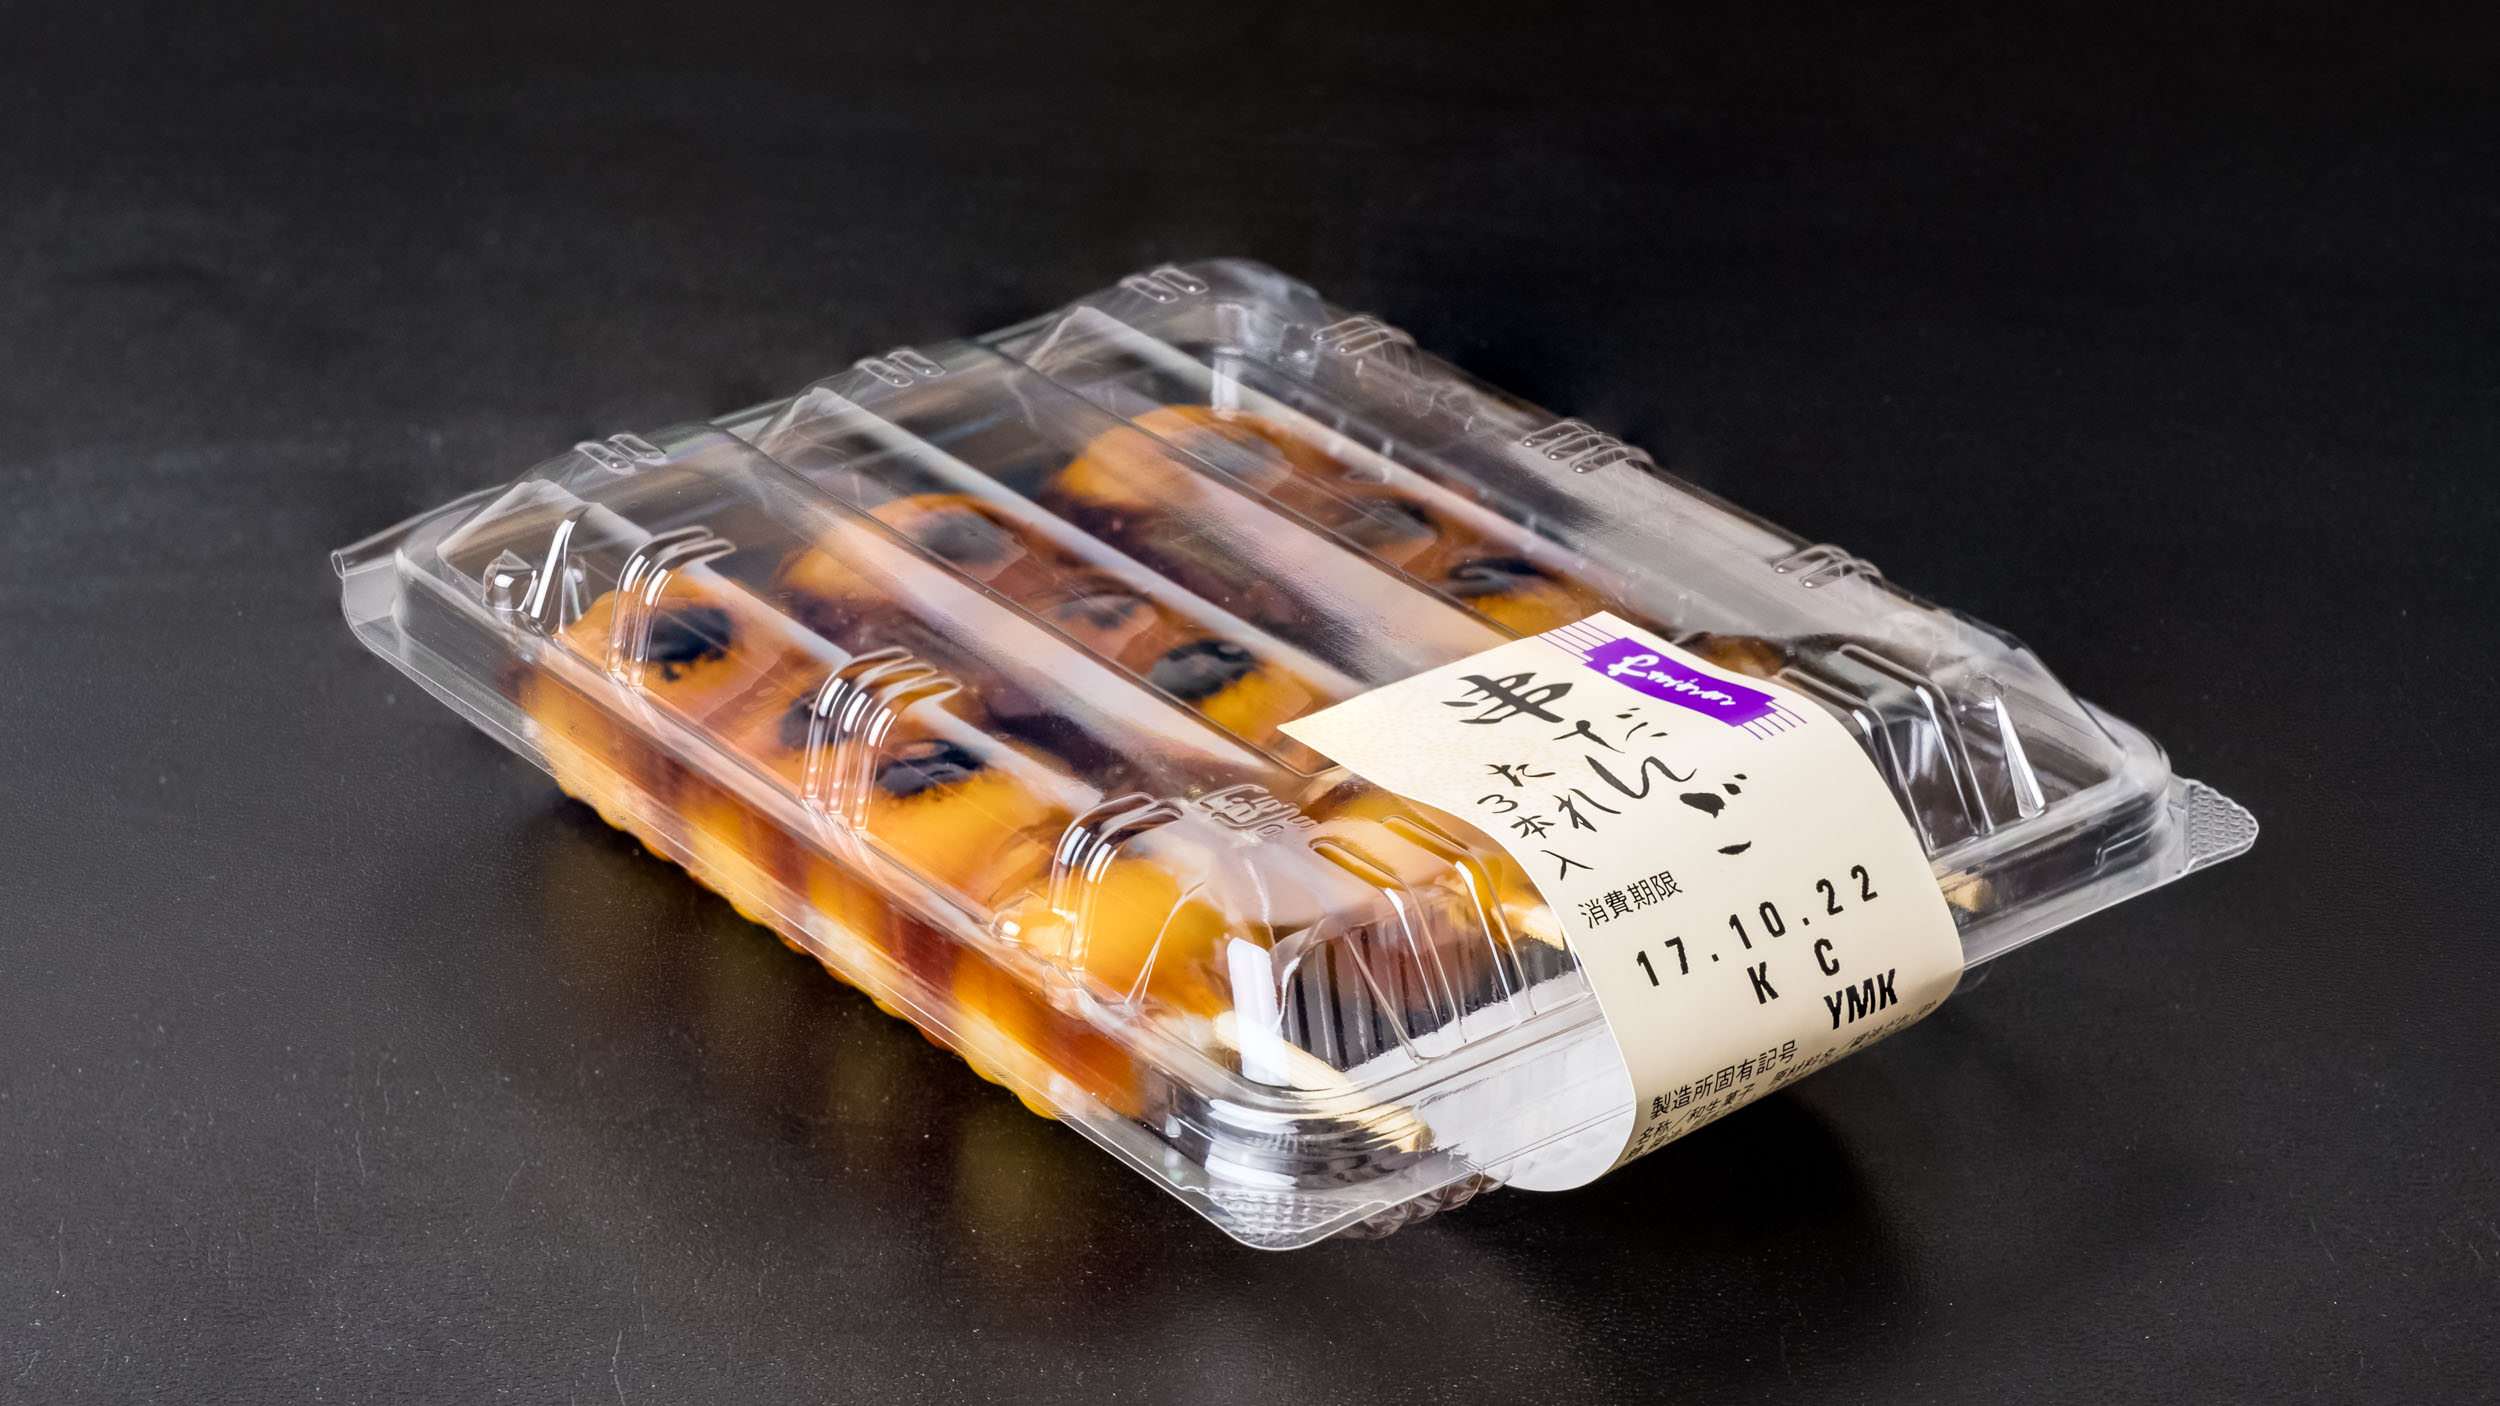 Dango in their package, made by Yamazaki